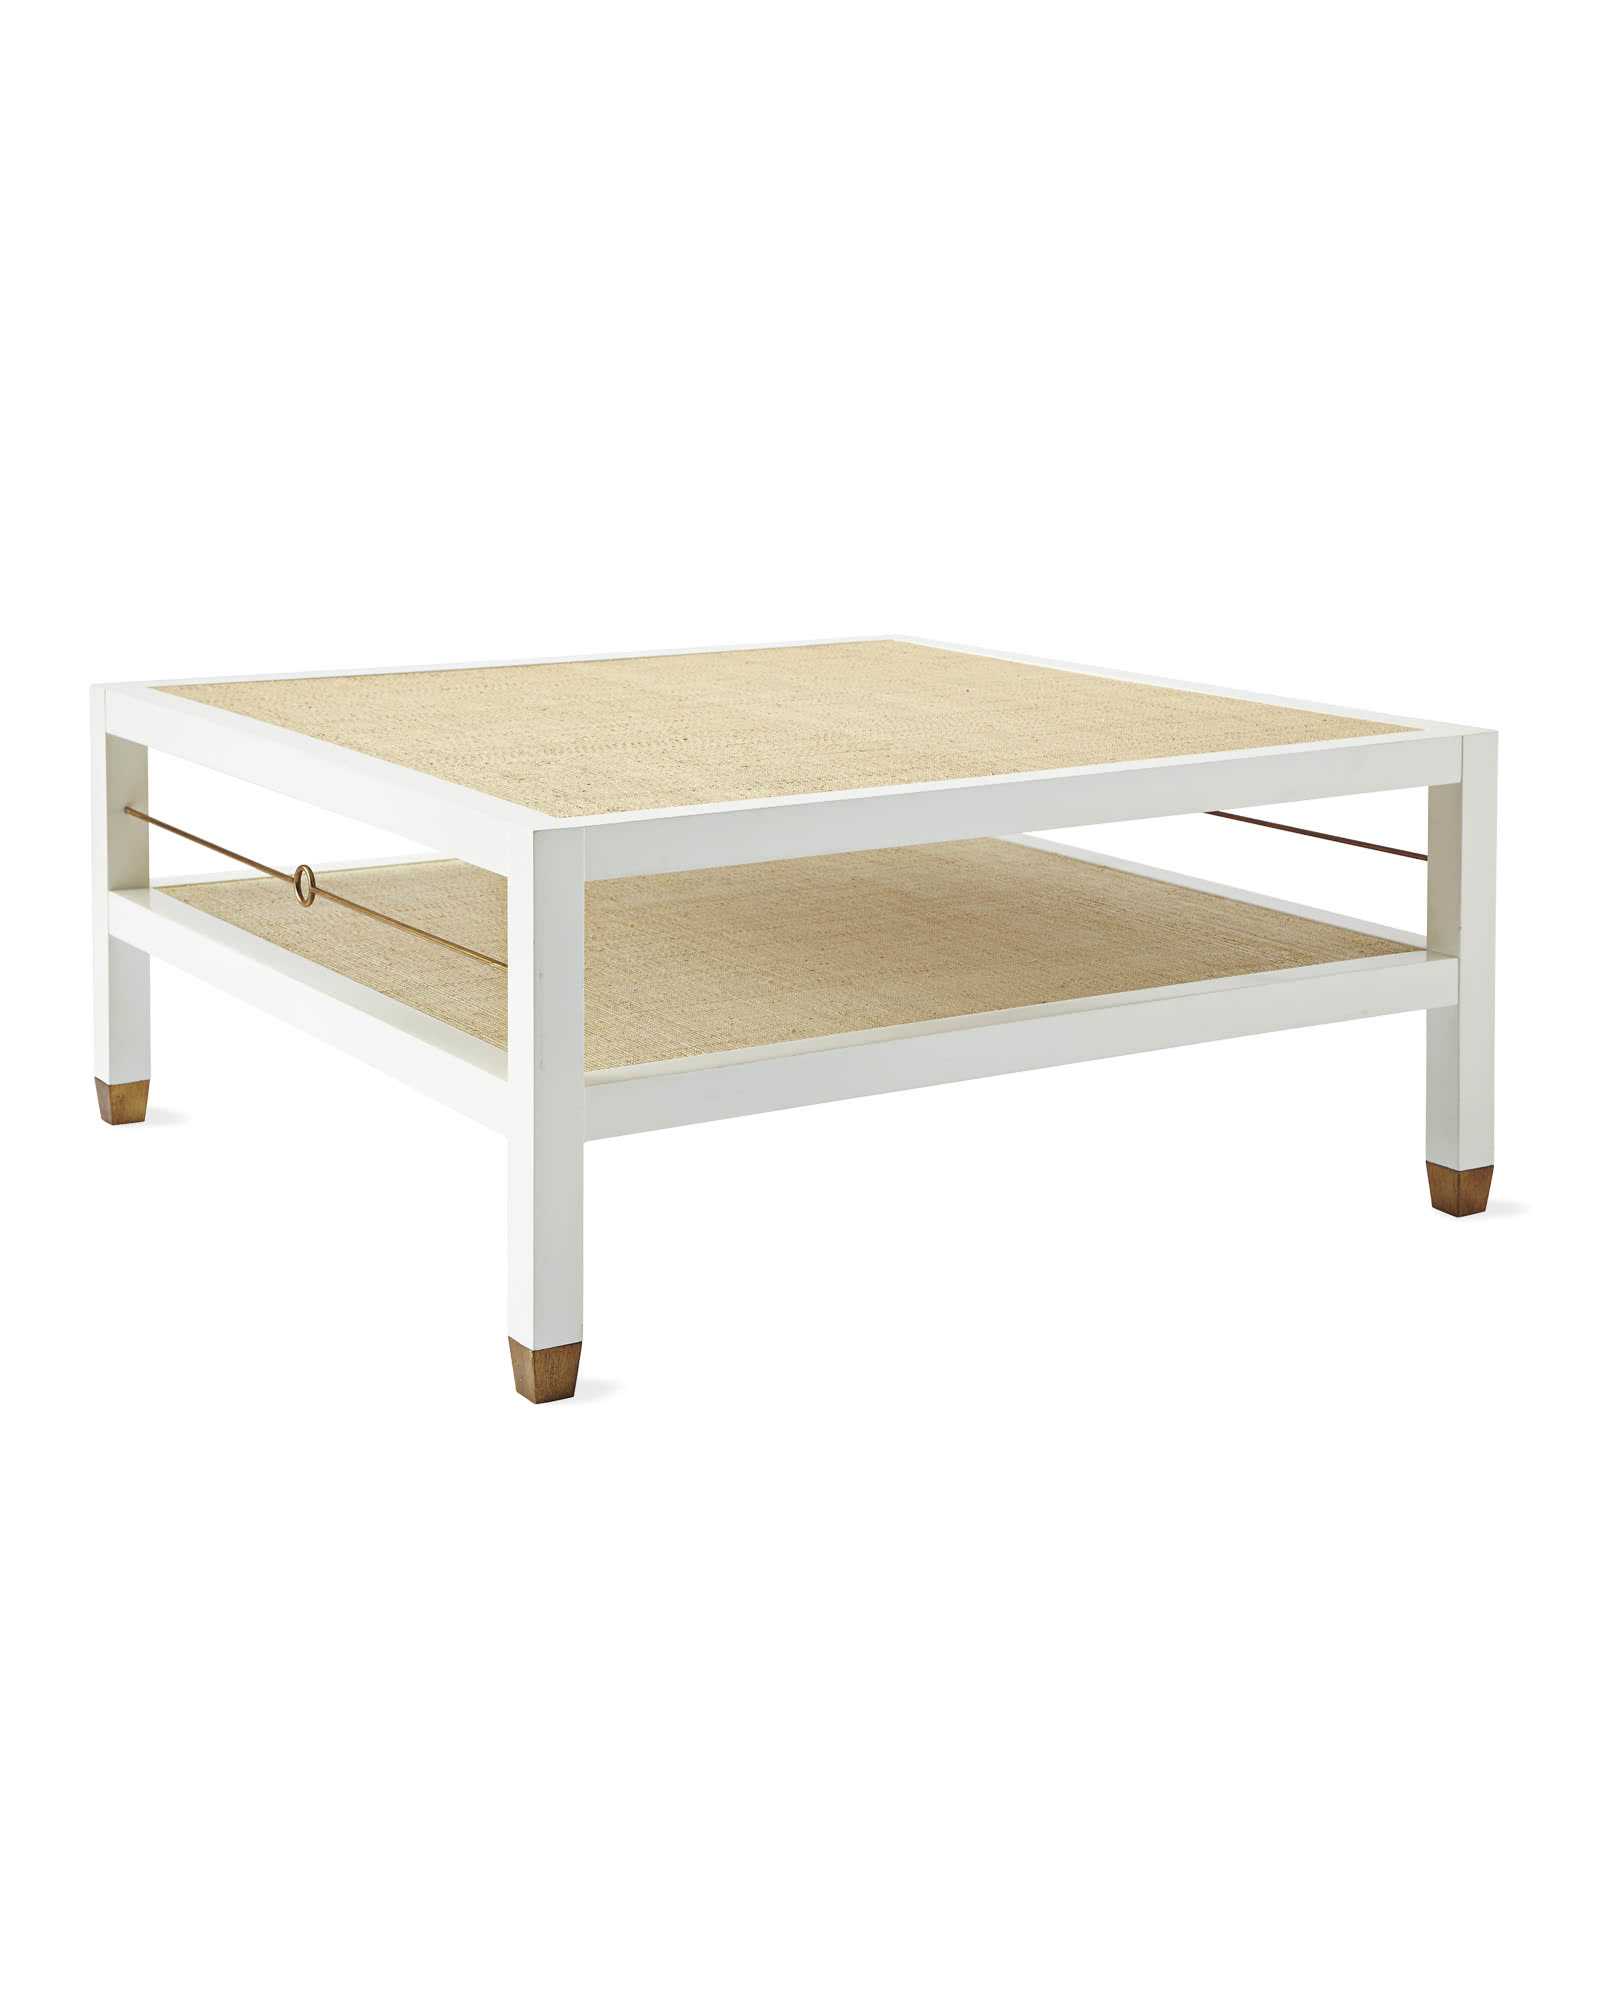 Cabot Square Coffee Table, White